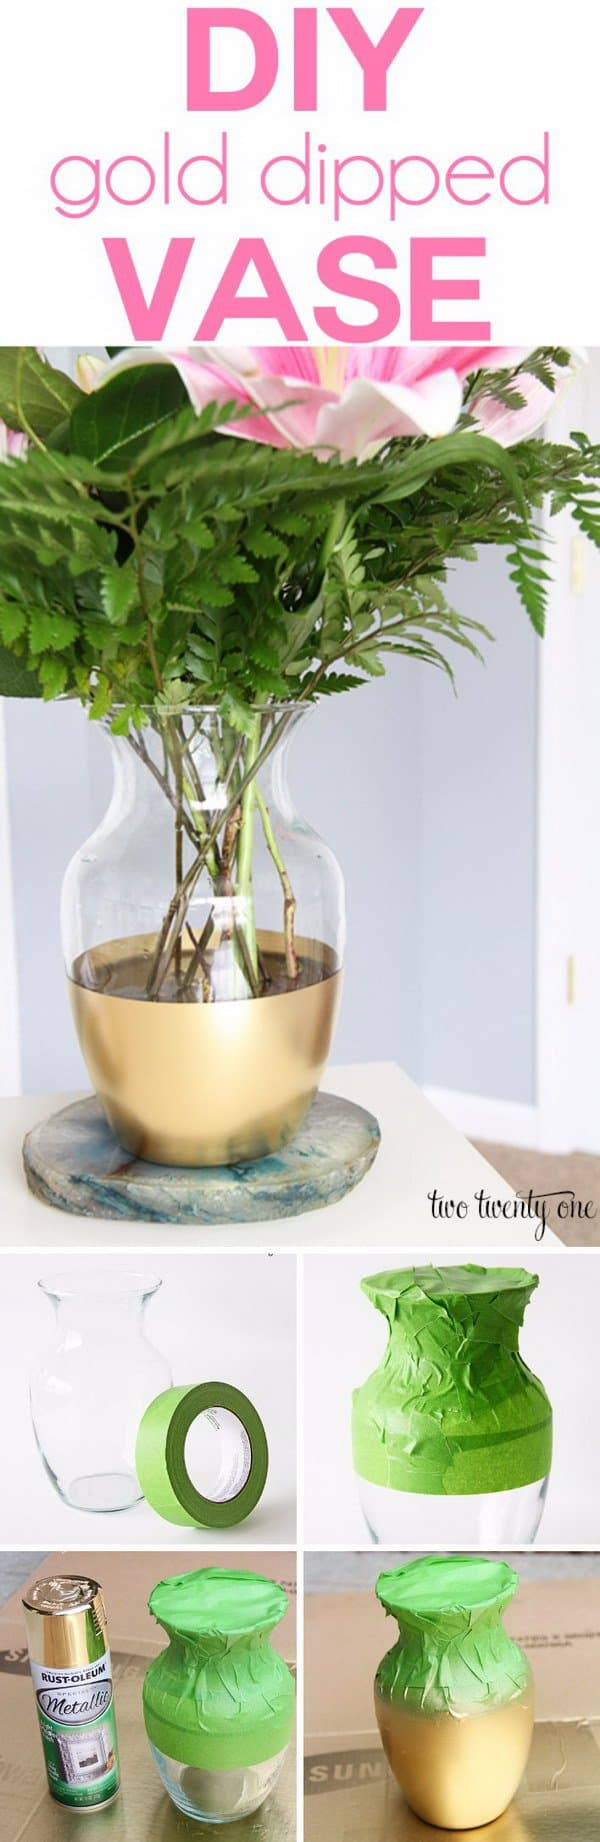 15 DIY Projects On How To Transform Glass-homesthetics.net (2)